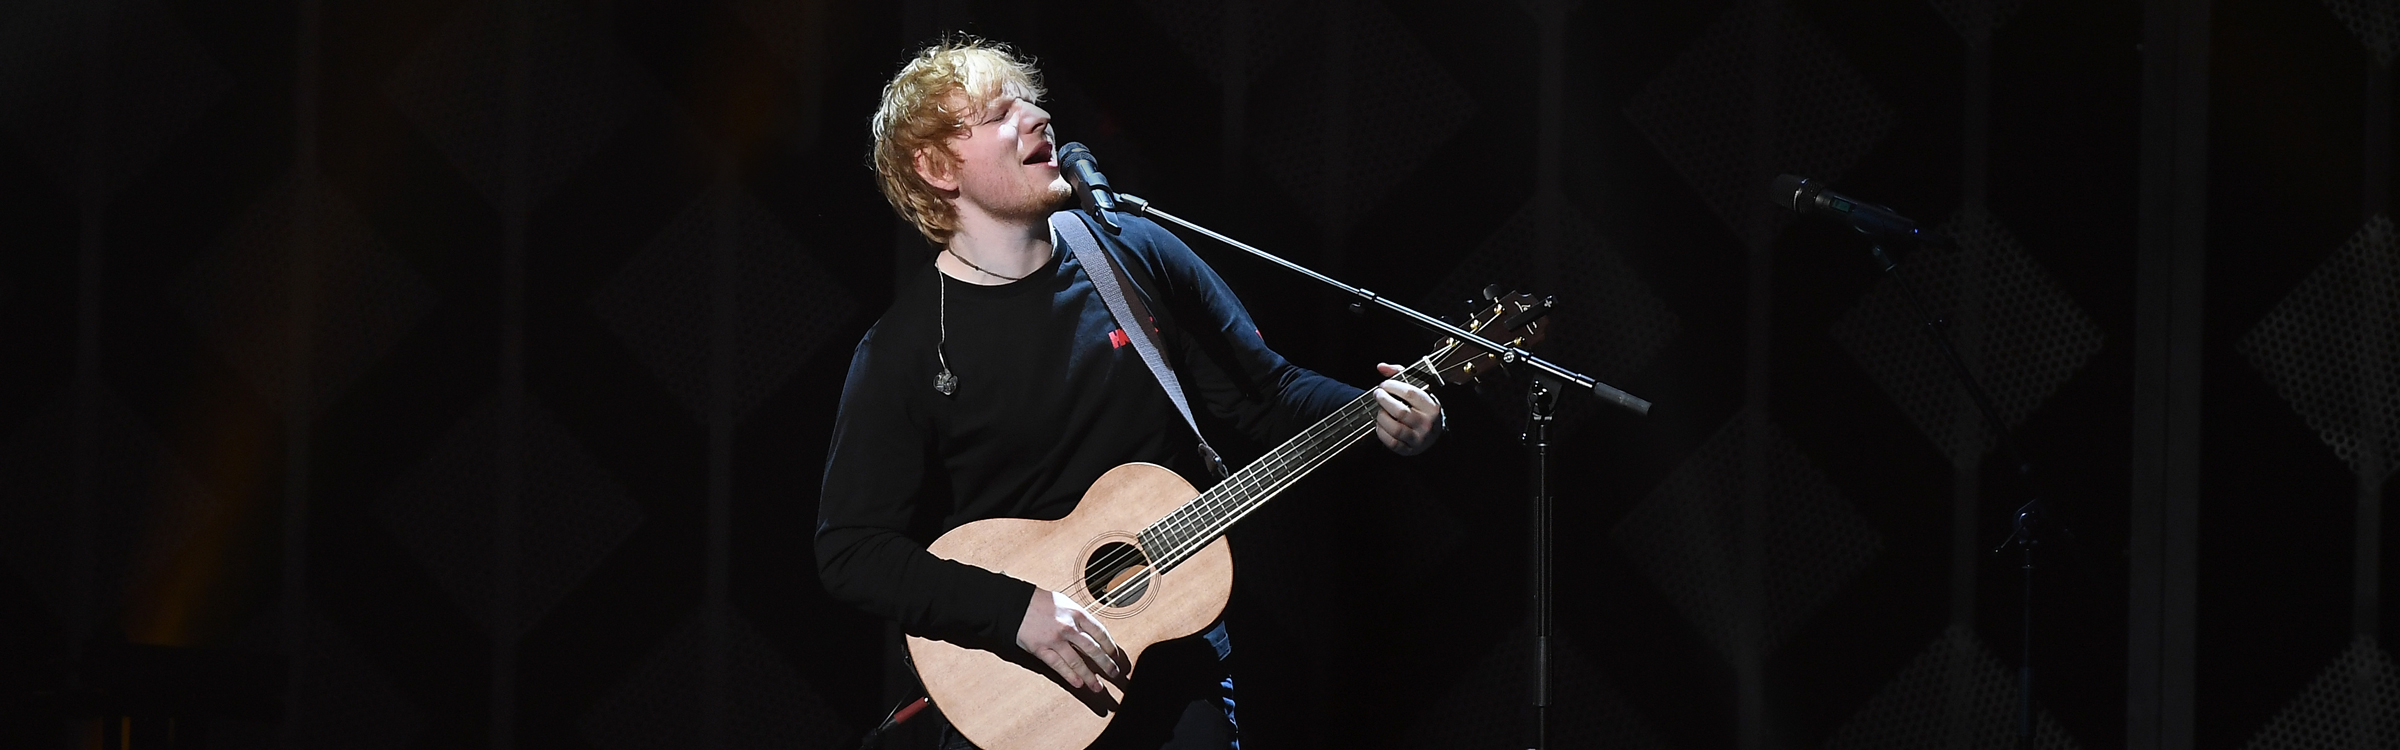 Ed sheeran header